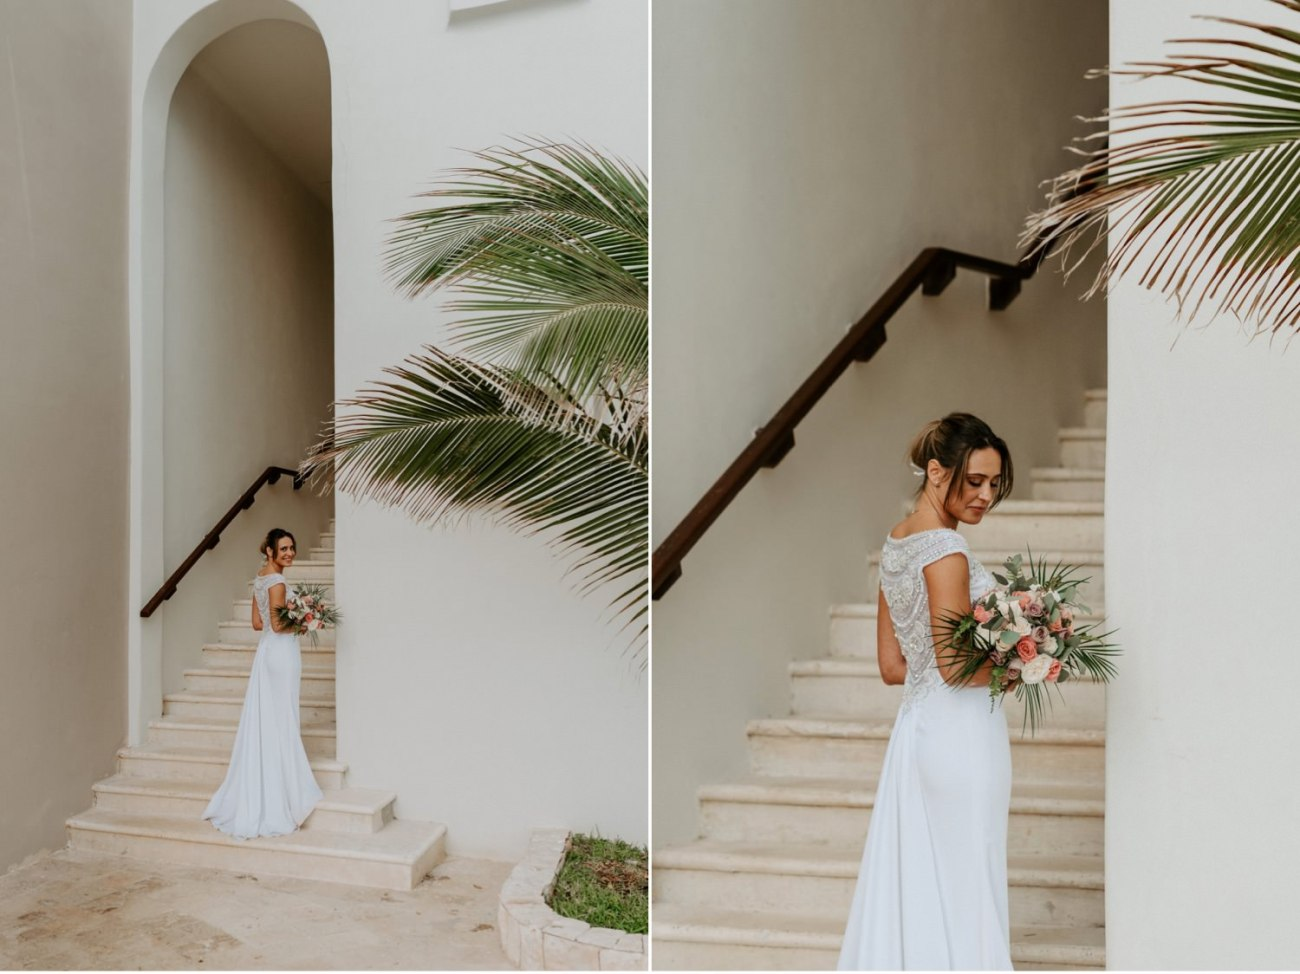 Cancun Destination Wedding Mexico Tulum Wedding Photographer Anais Possamai Photography 050